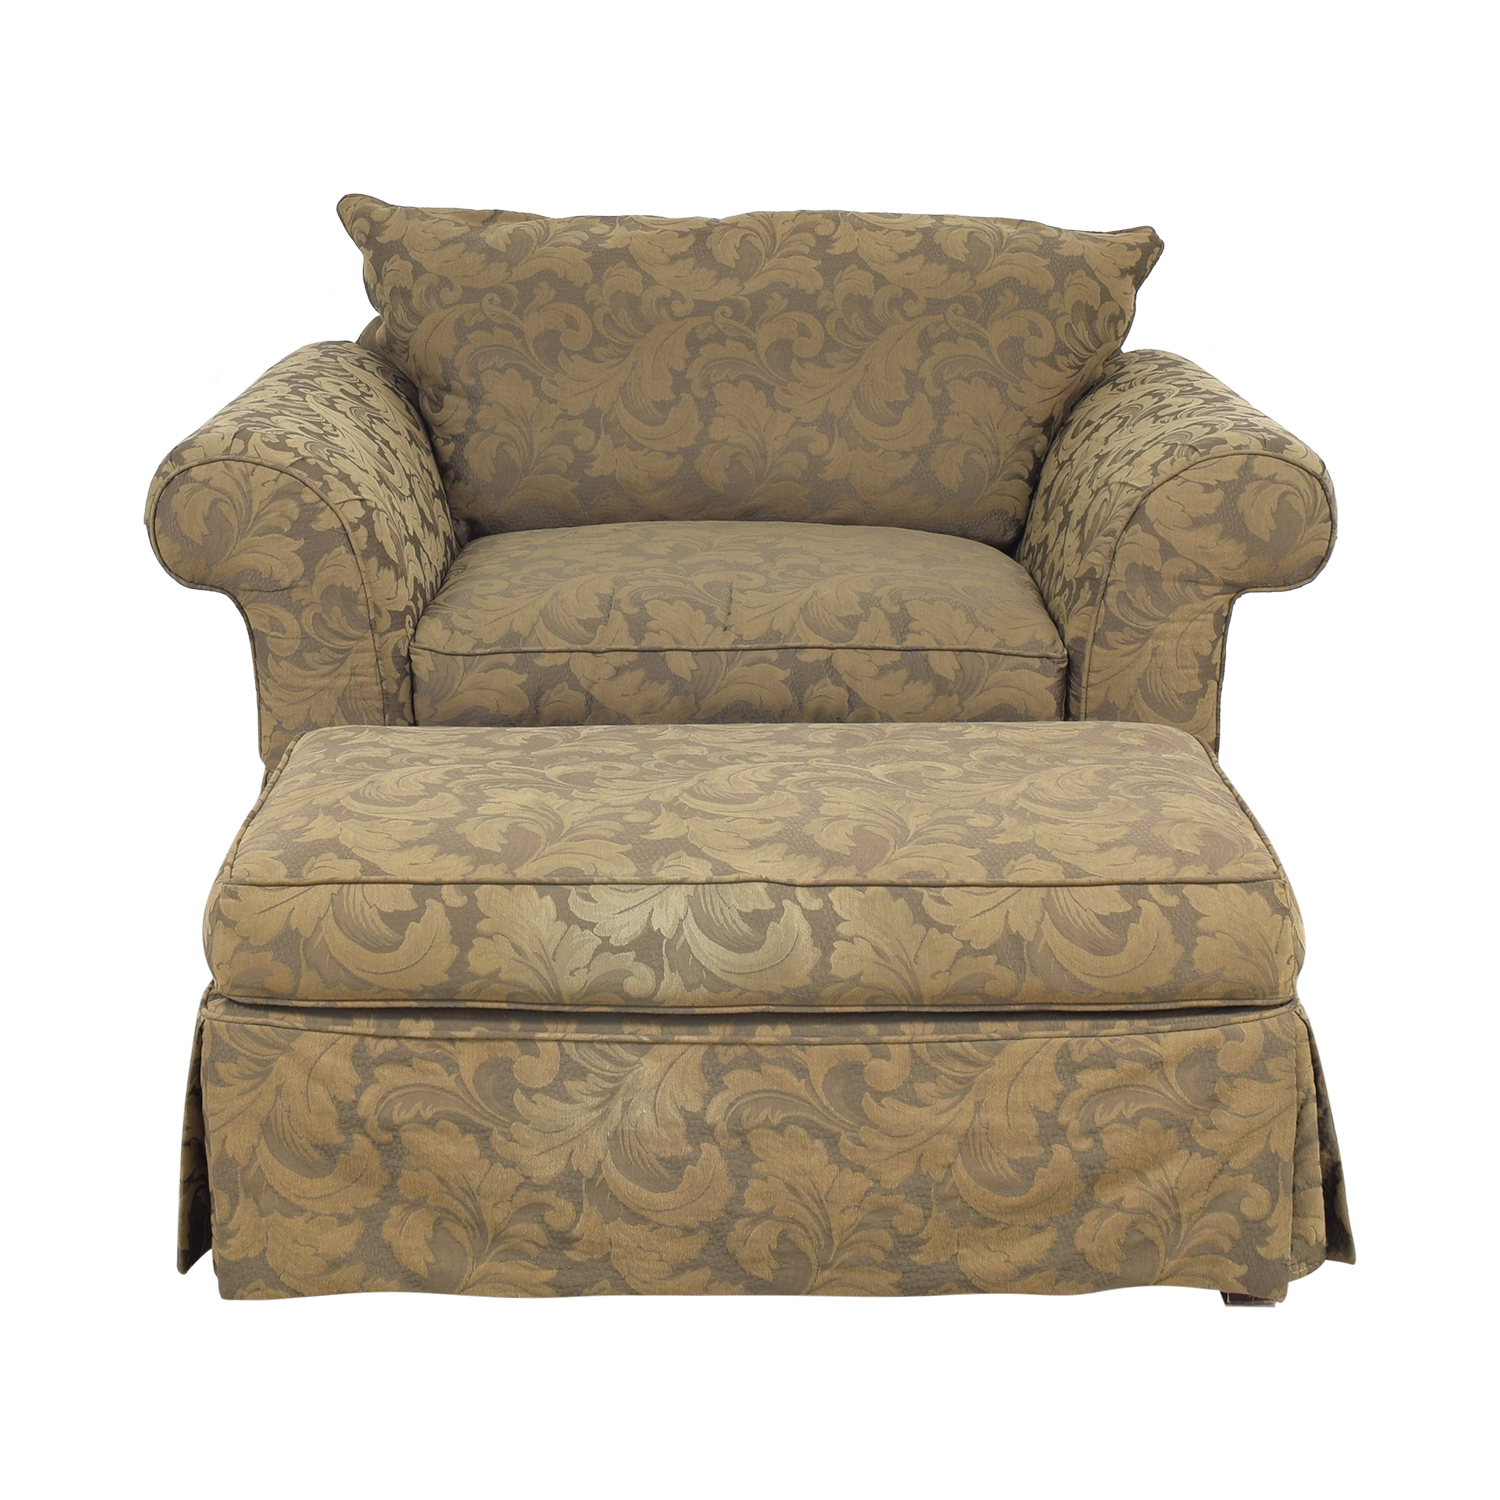 shop Hickory Hill Hickory Hill Oversized Chair and Ottoman online